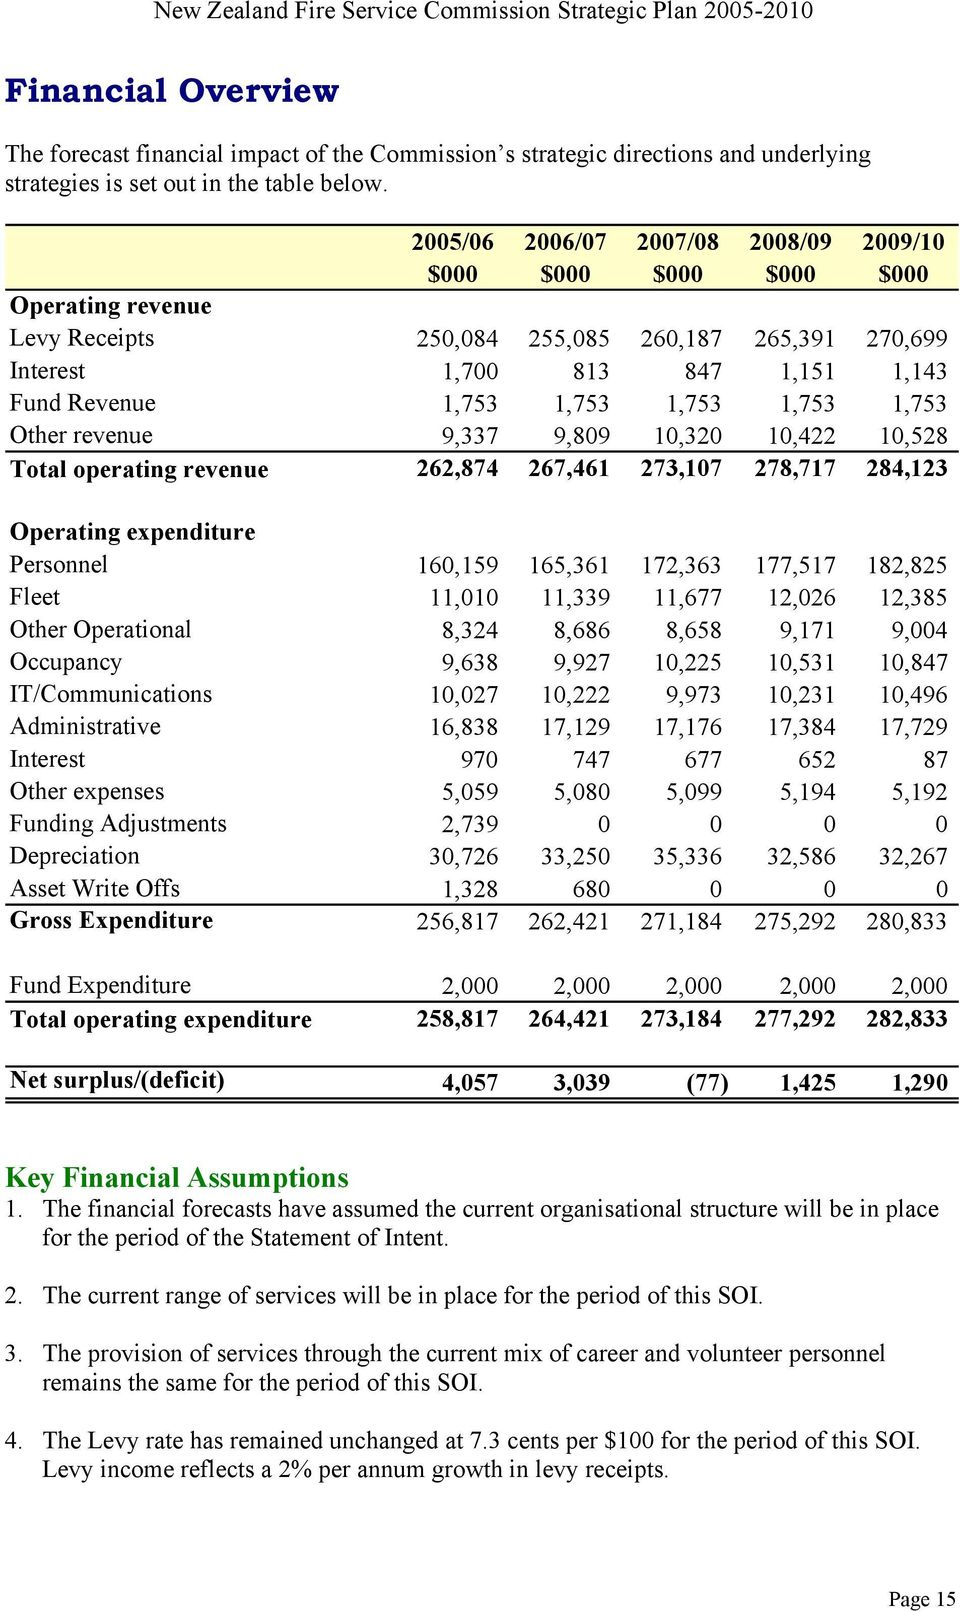 1,753 1,753 1,753 Other revenue 9,337 9,809 10,320 10,422 10,528 Total operating revenue 262,874 267,461 273,107 278,717 284,123 Operating expenditure Personnel 160,159 165,361 172,363 177,517